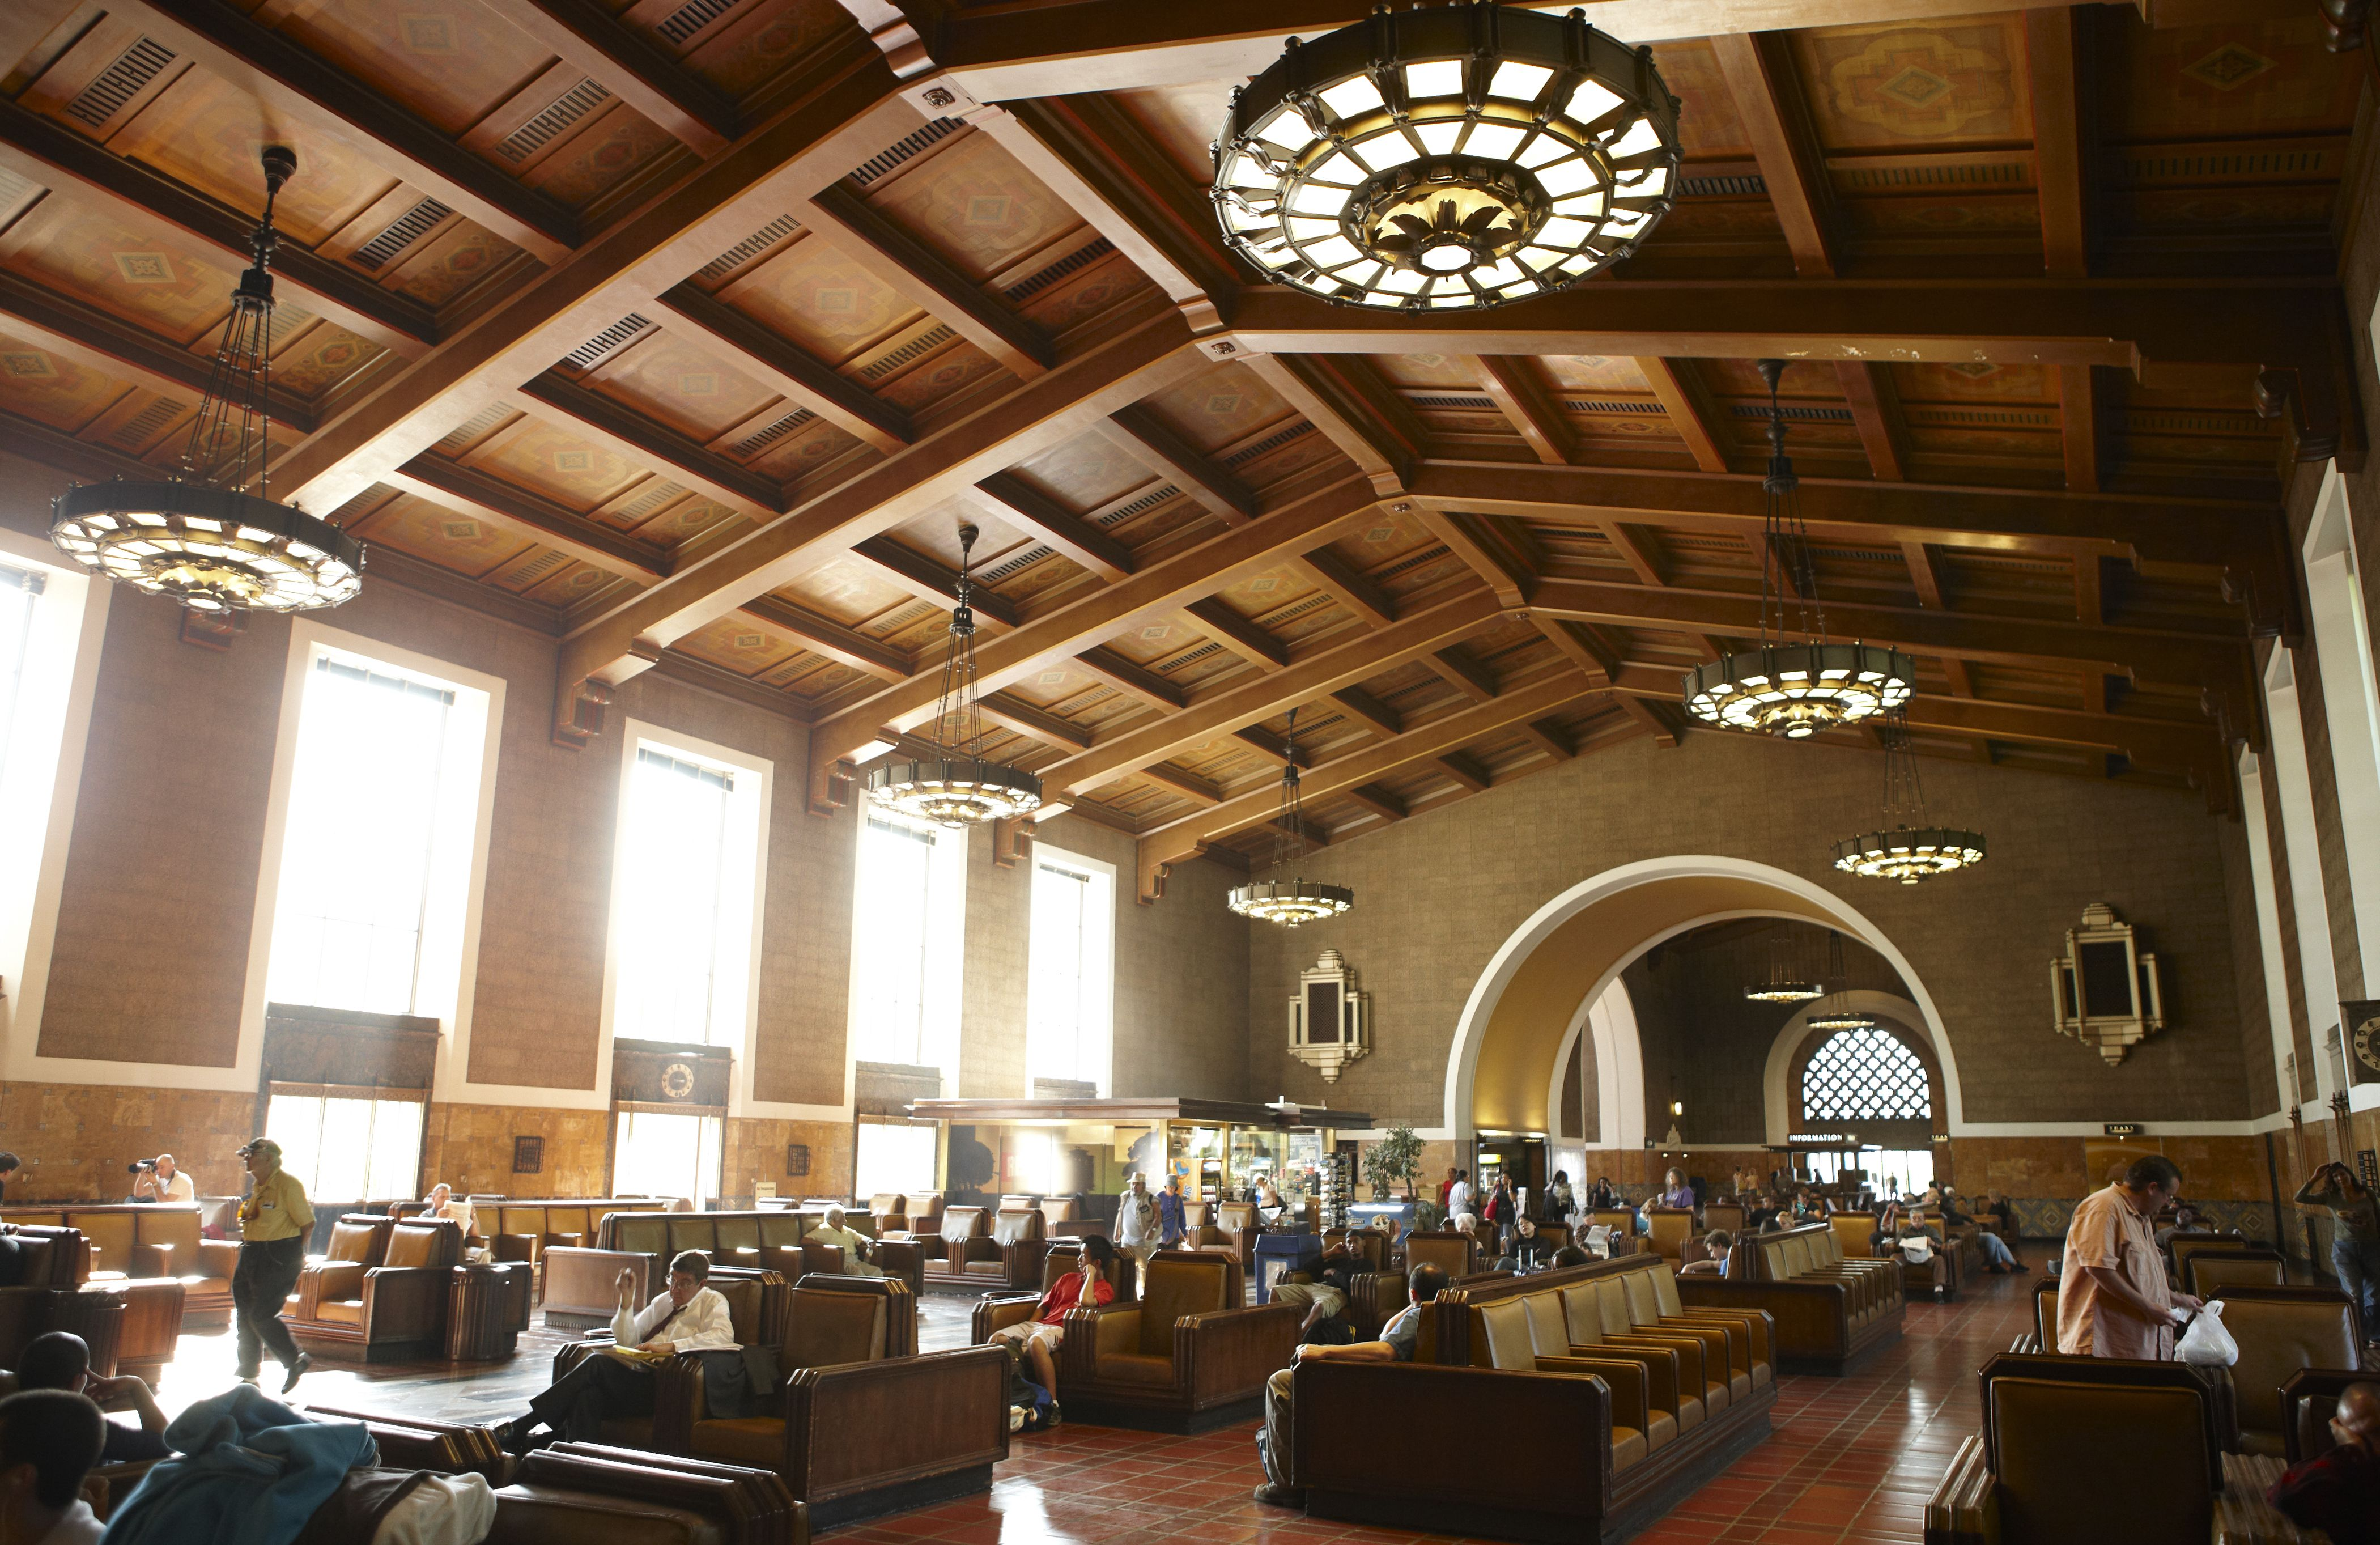 Los Angeles Train Station Travel Travelinspiration Travelphotography Losangeles Ylp100bestof Wanderlust Train Station Travel Inspiration Union Station